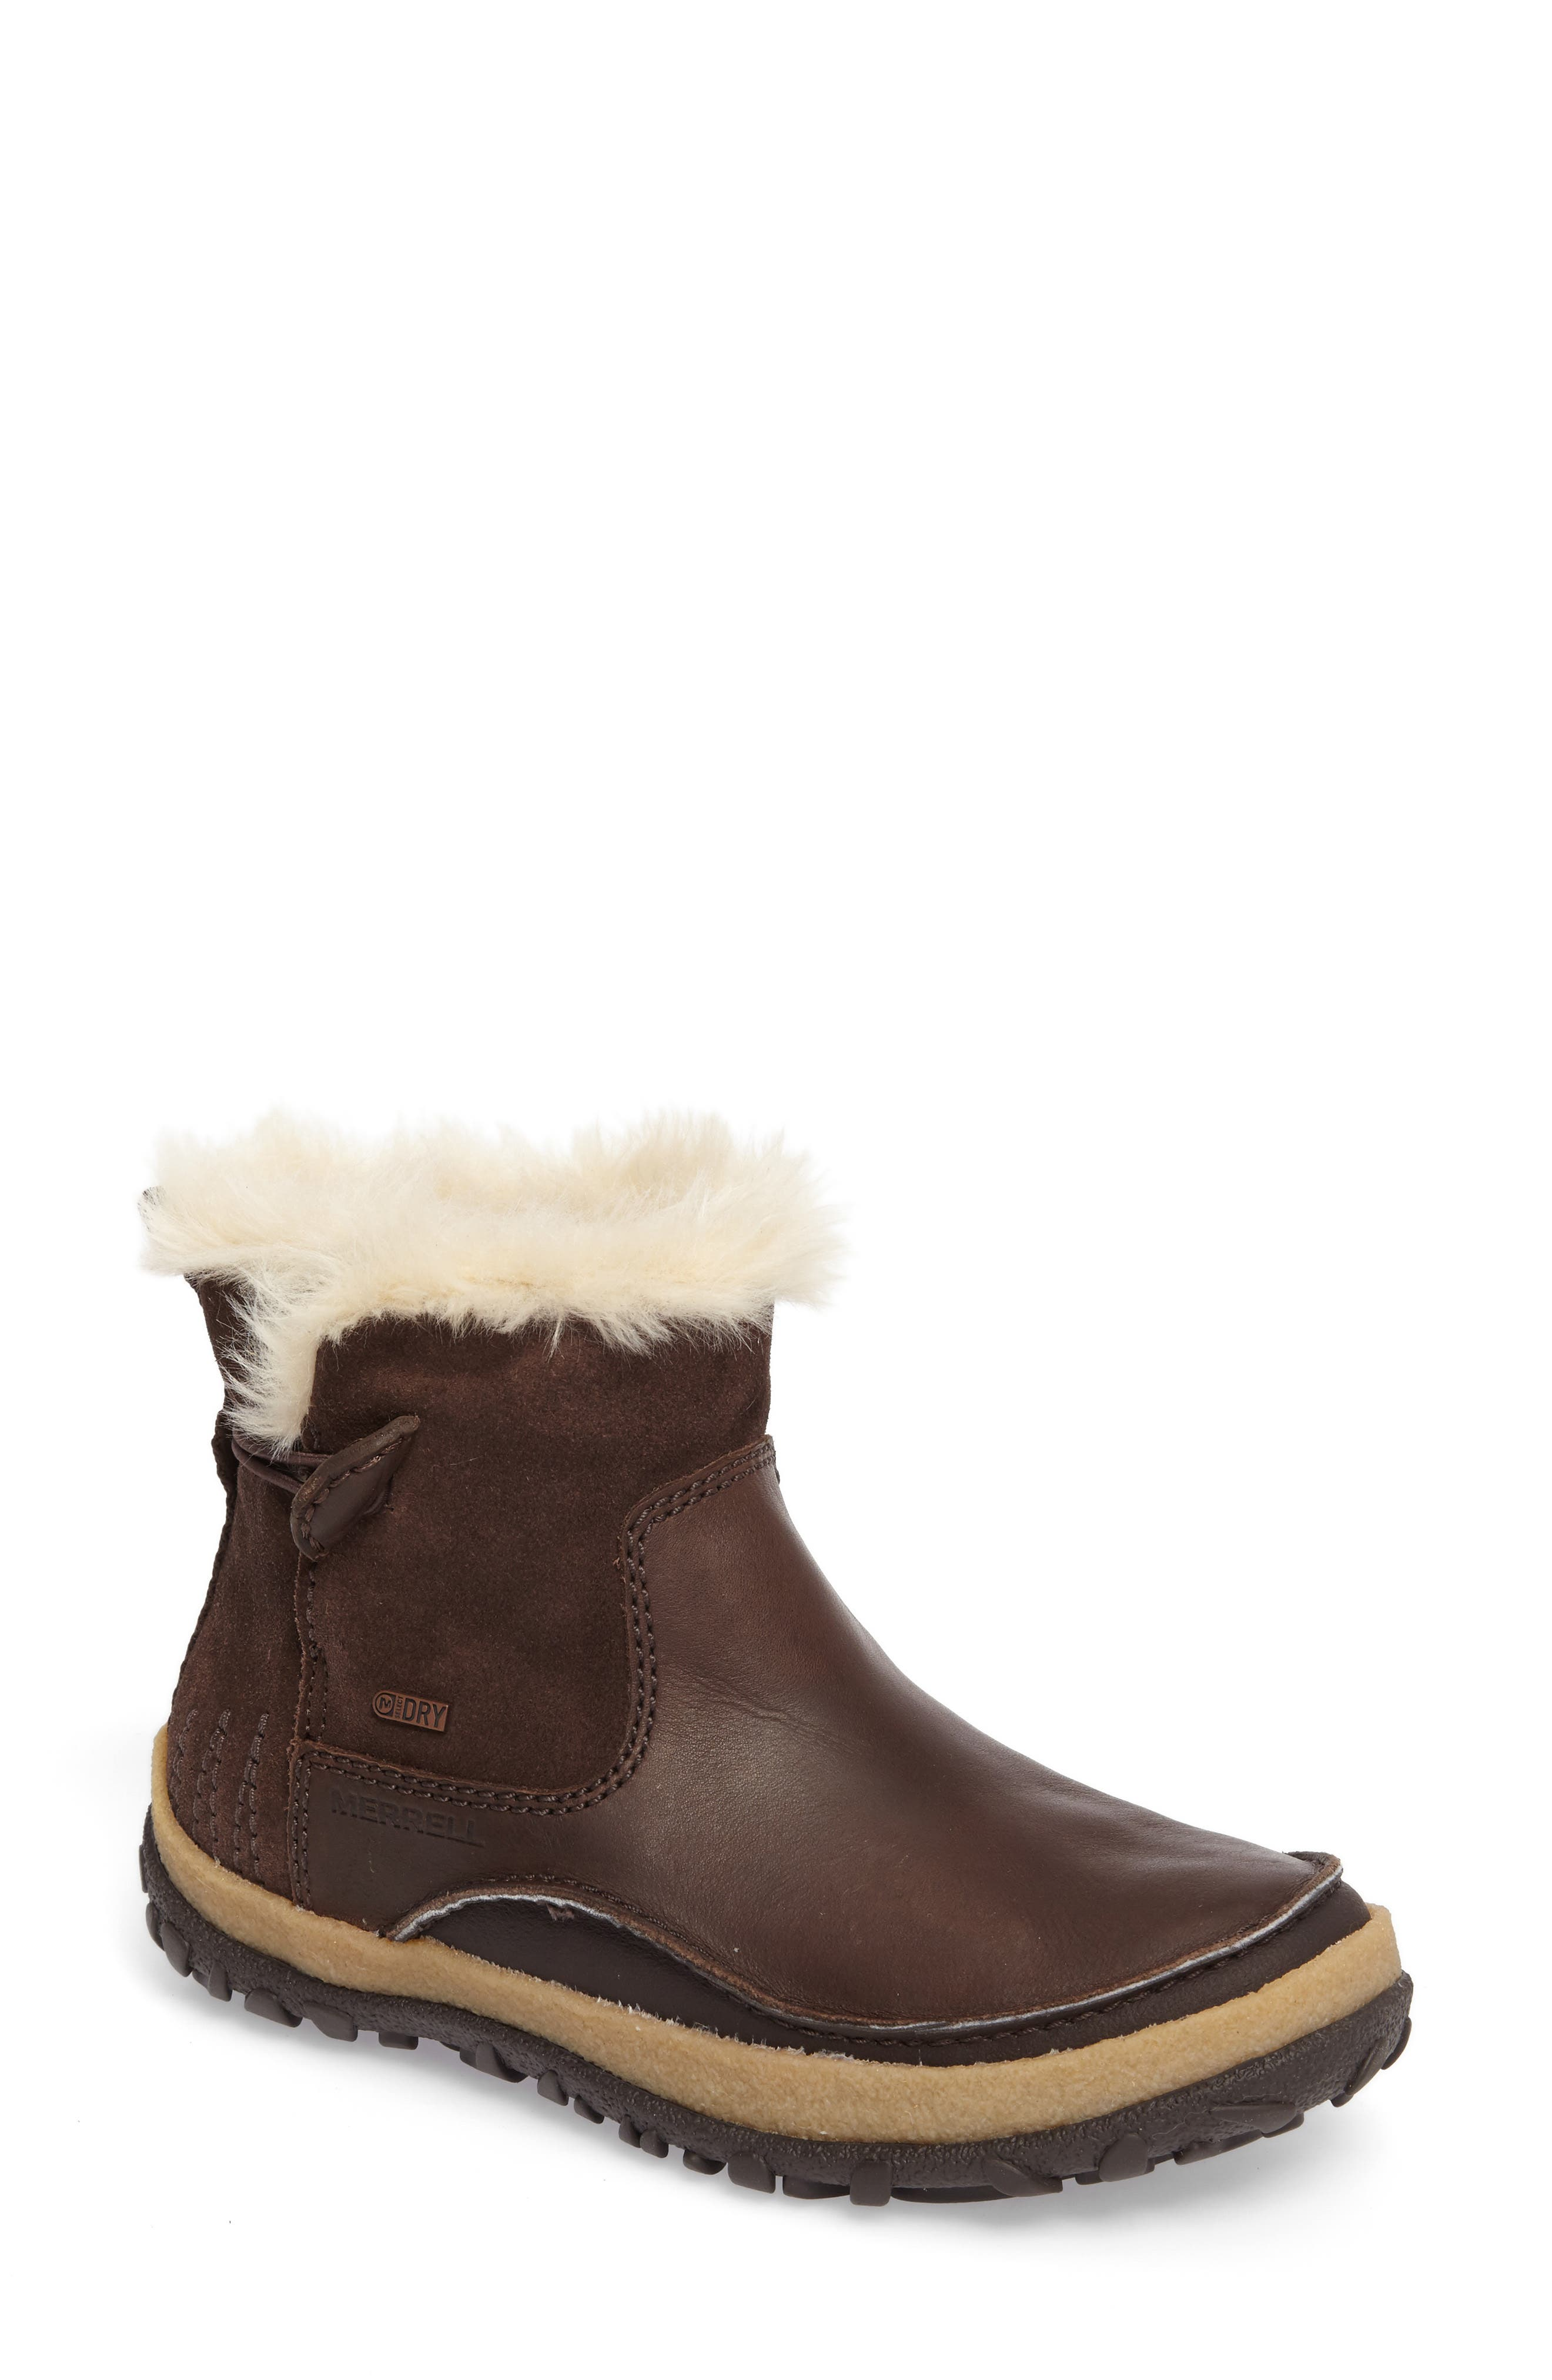 Tremblant Pull-On Polar Waterproof Bootie,                             Main thumbnail 3, color,